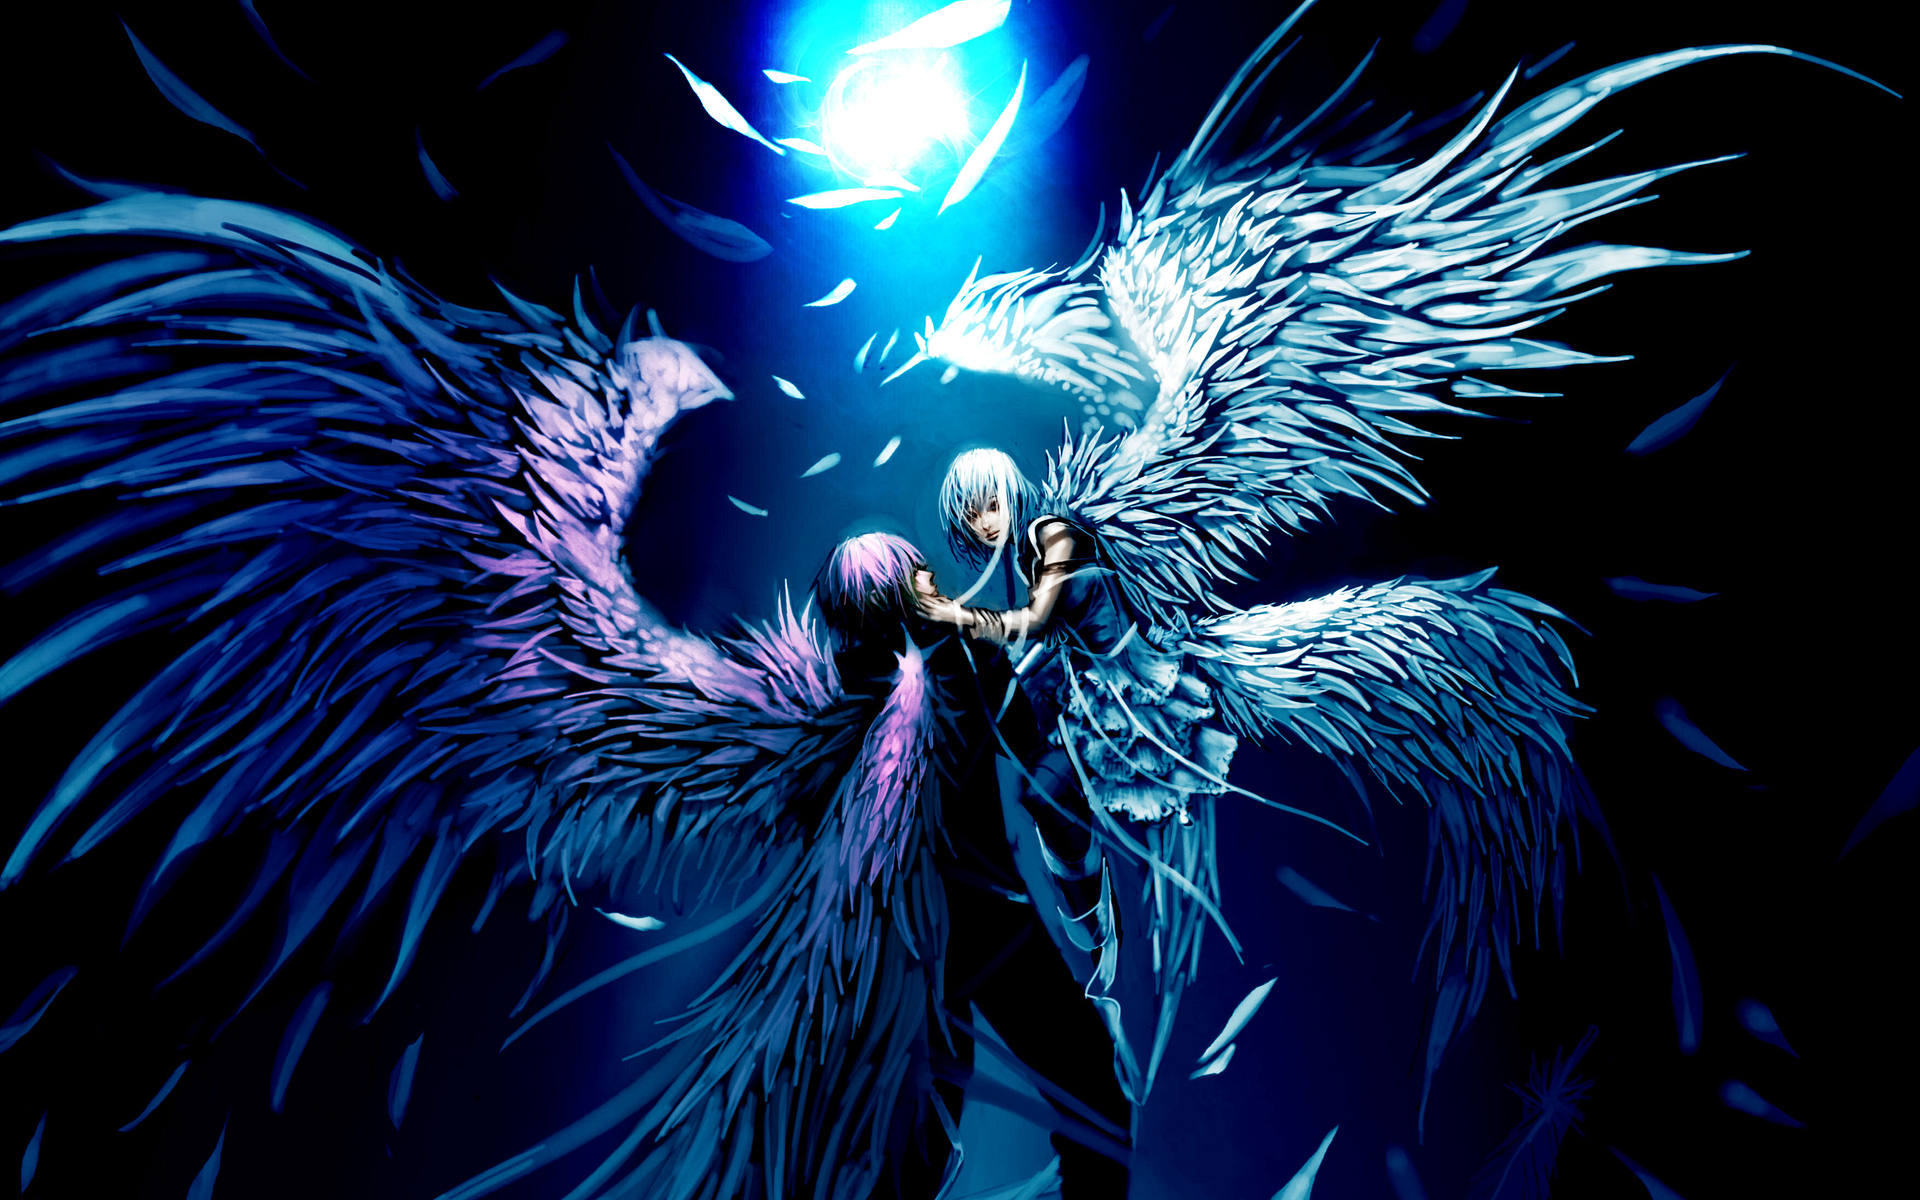 Anime Cupid Angel Full Just Another High Wallpaper 1920x1200 Full HD 1920x1200